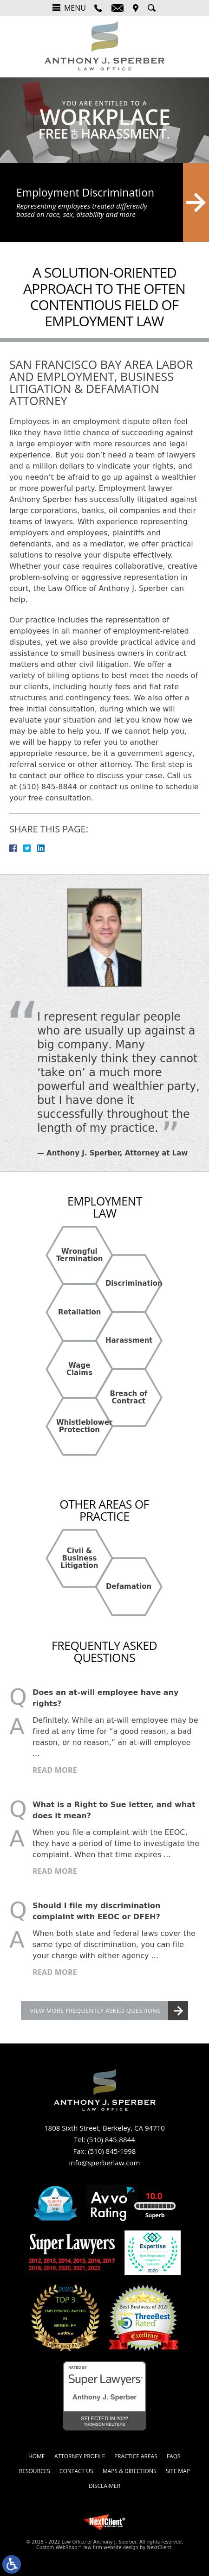 Law Office of Anthony J. Sperber - Berkeley CA Lawyers